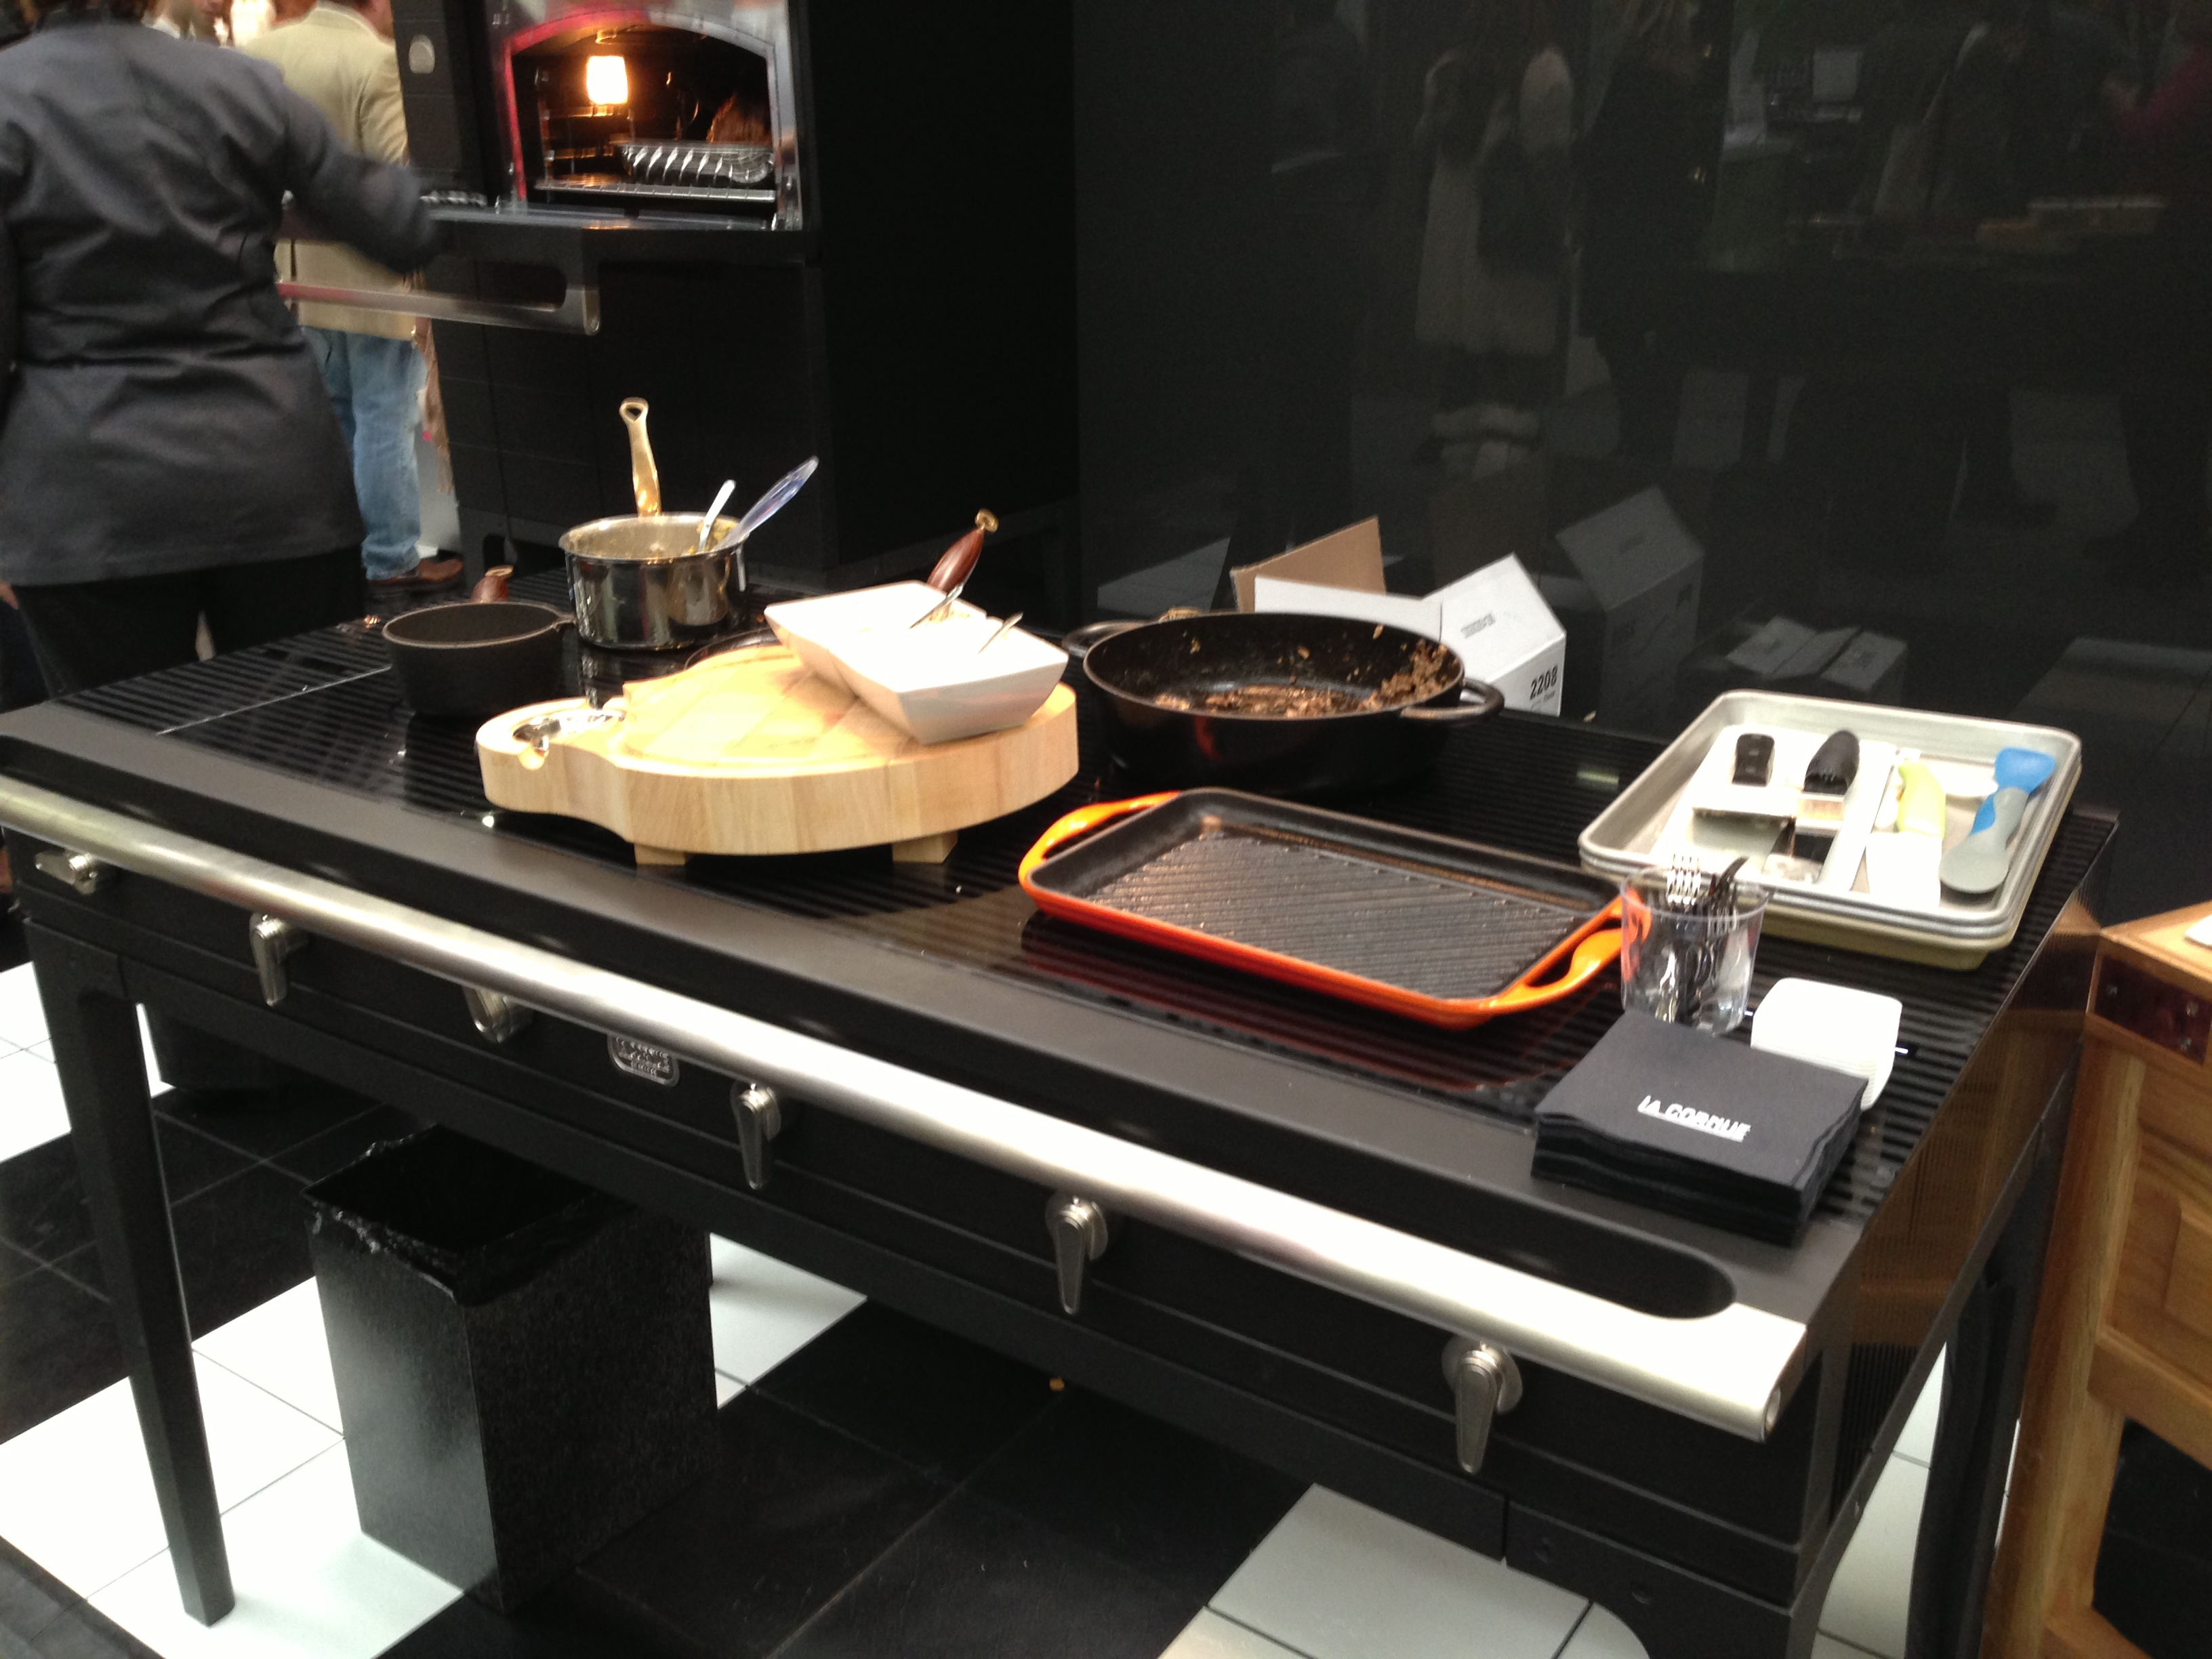 The architectural digest show part 1 kieffer 39 s for Table induction